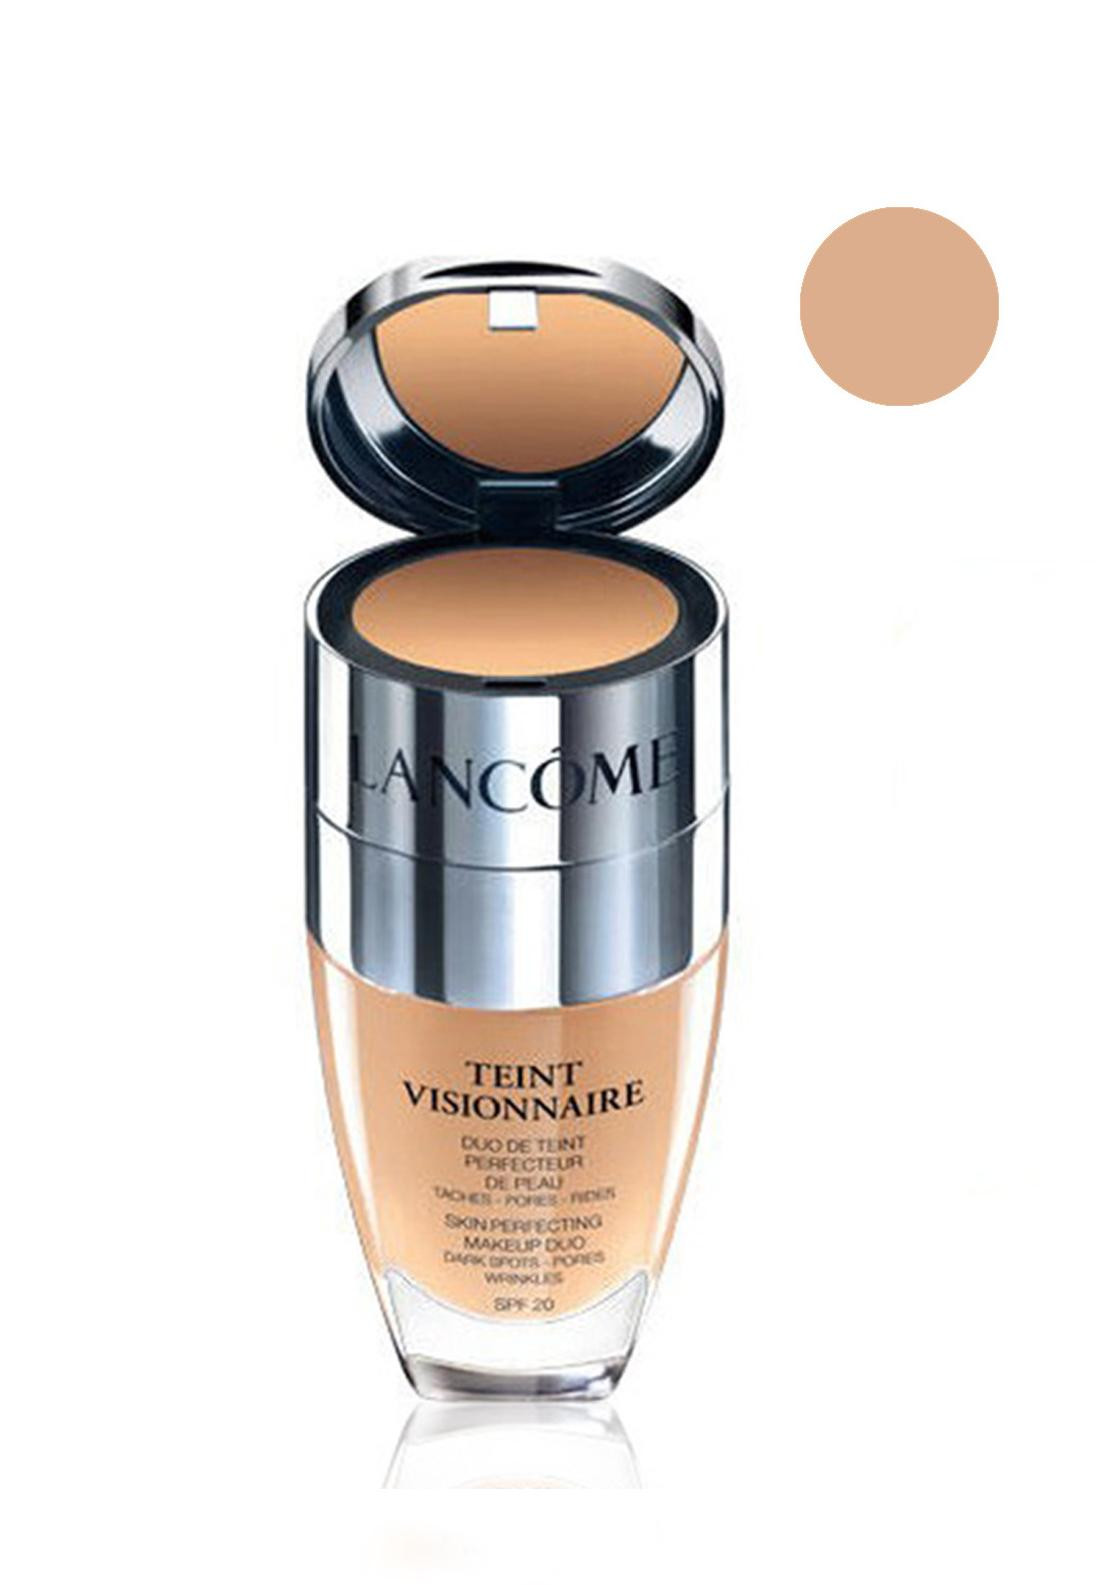 Lancome Visionnaire Smoothing Skincare Instant Perfector, 30ml